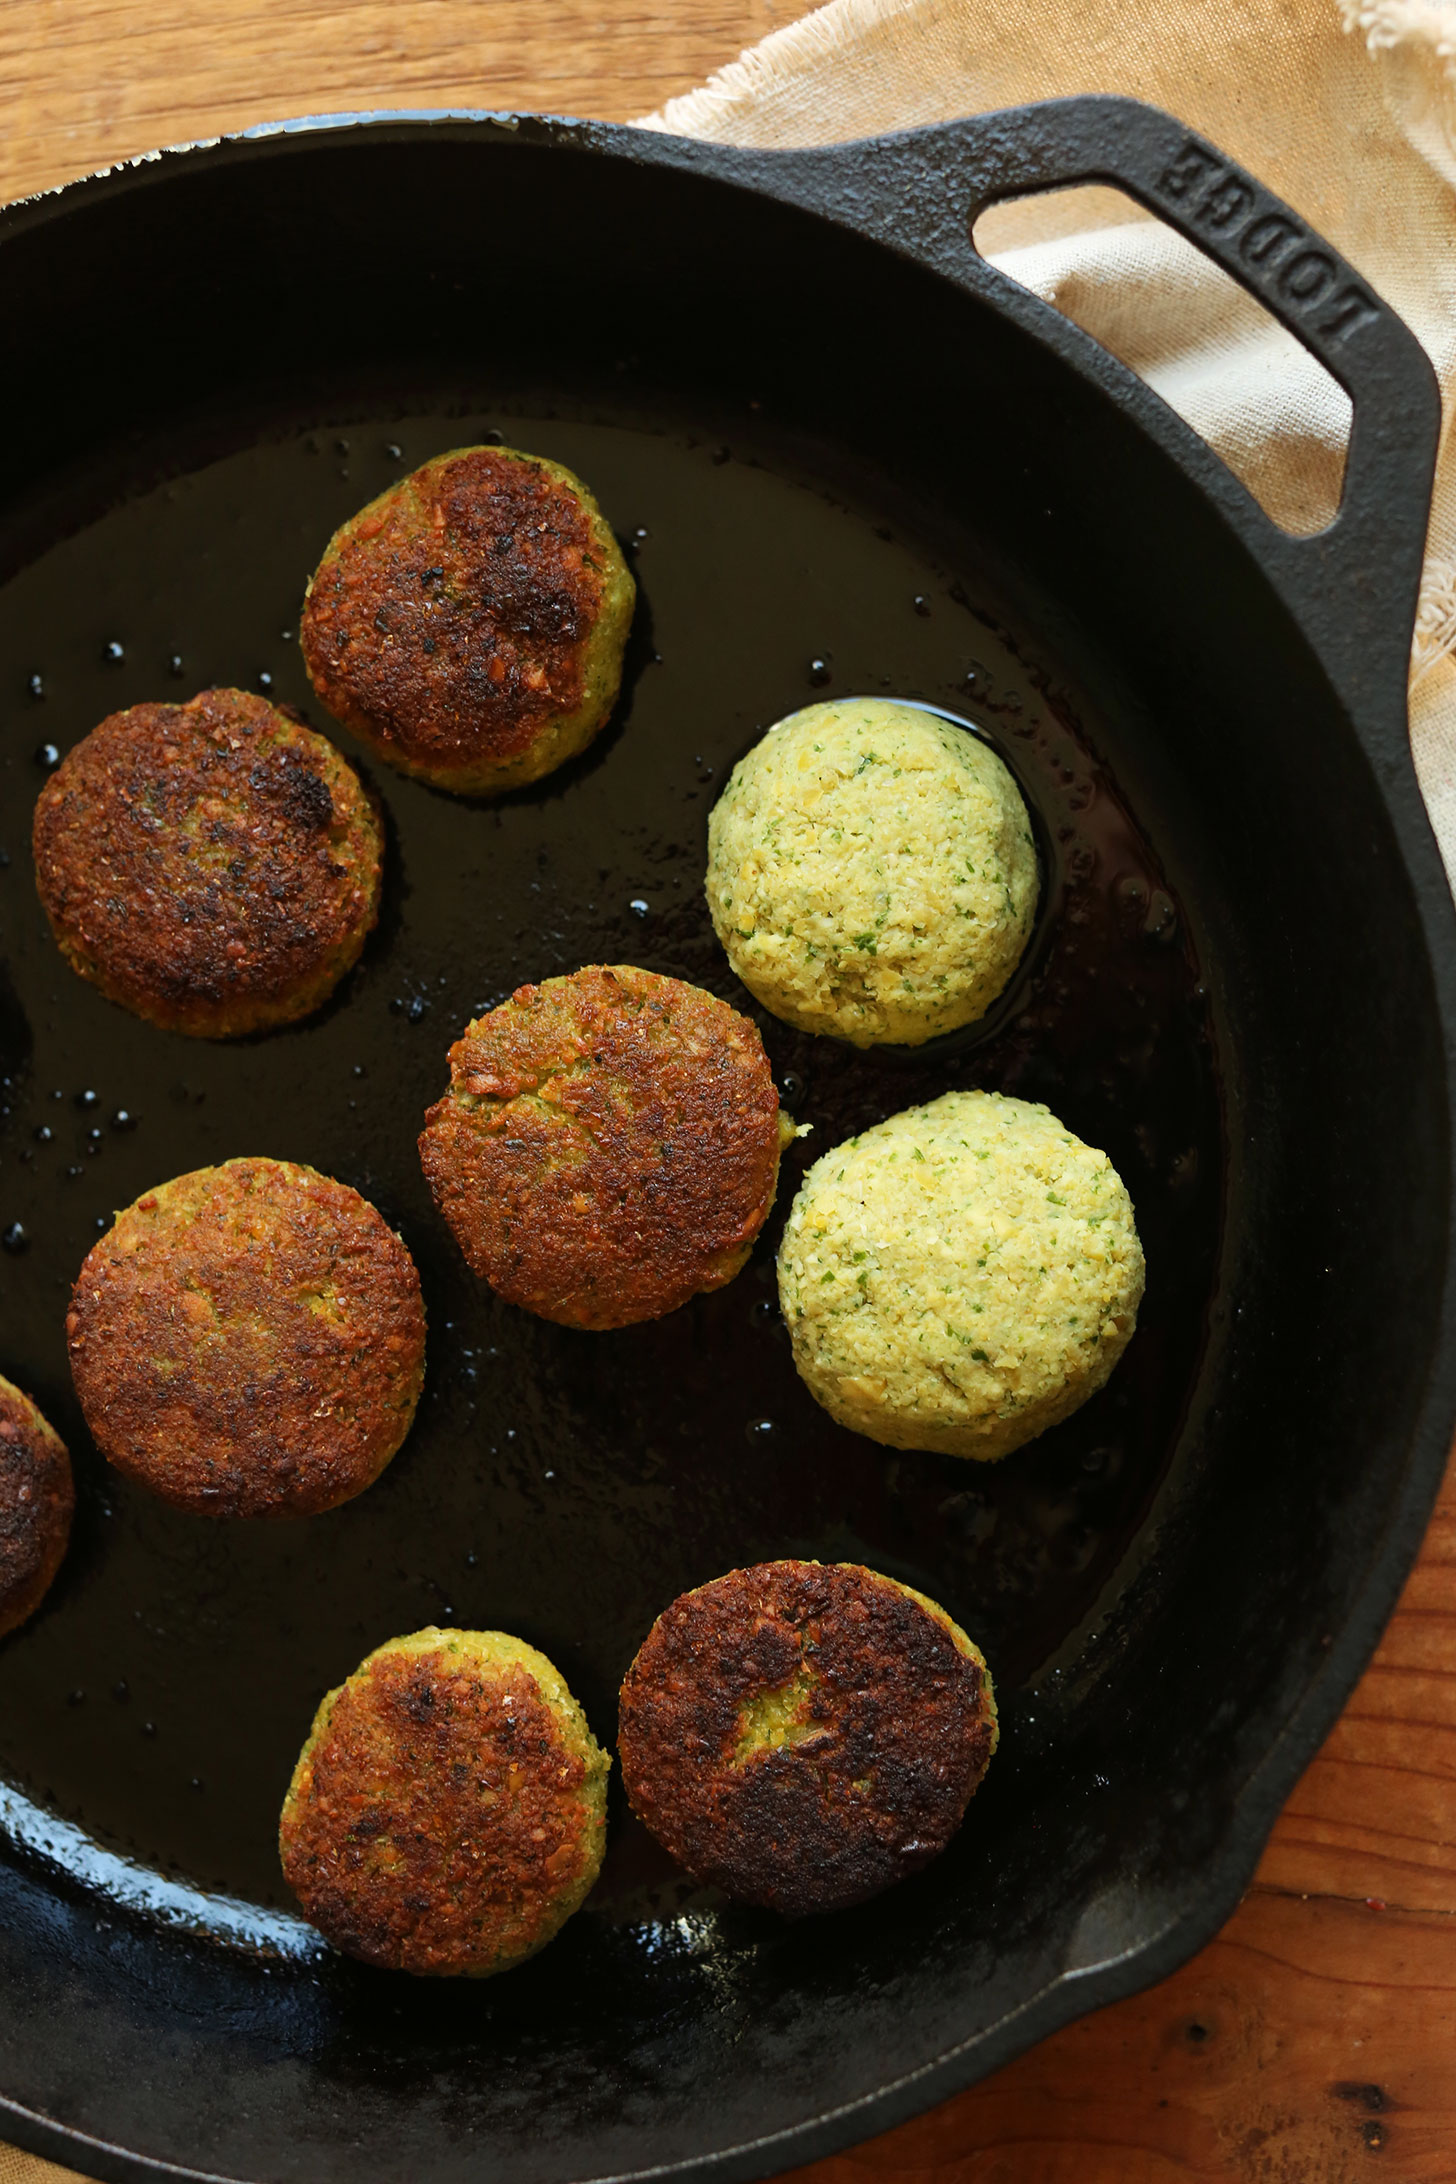 Browning gluten-free vegan falafel in a cast-iron skillet for a plant-based meal